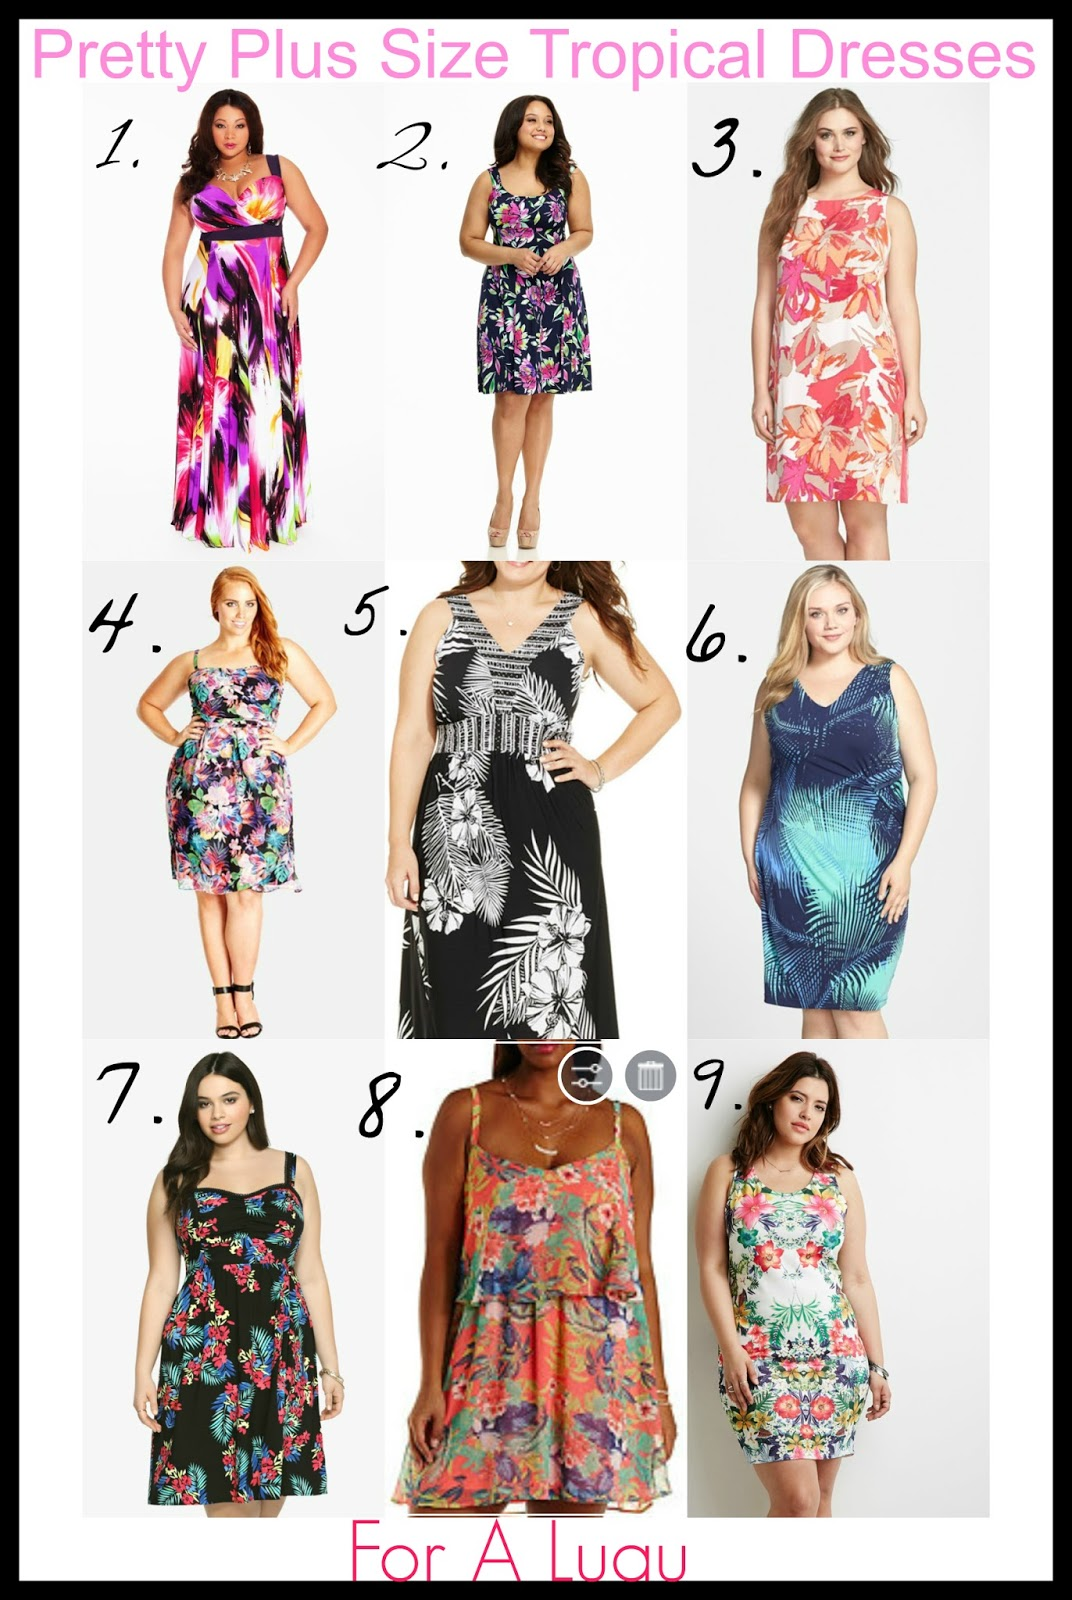 My Favorite Picks Of Plus Size Tropical Dresses For A Luau ...